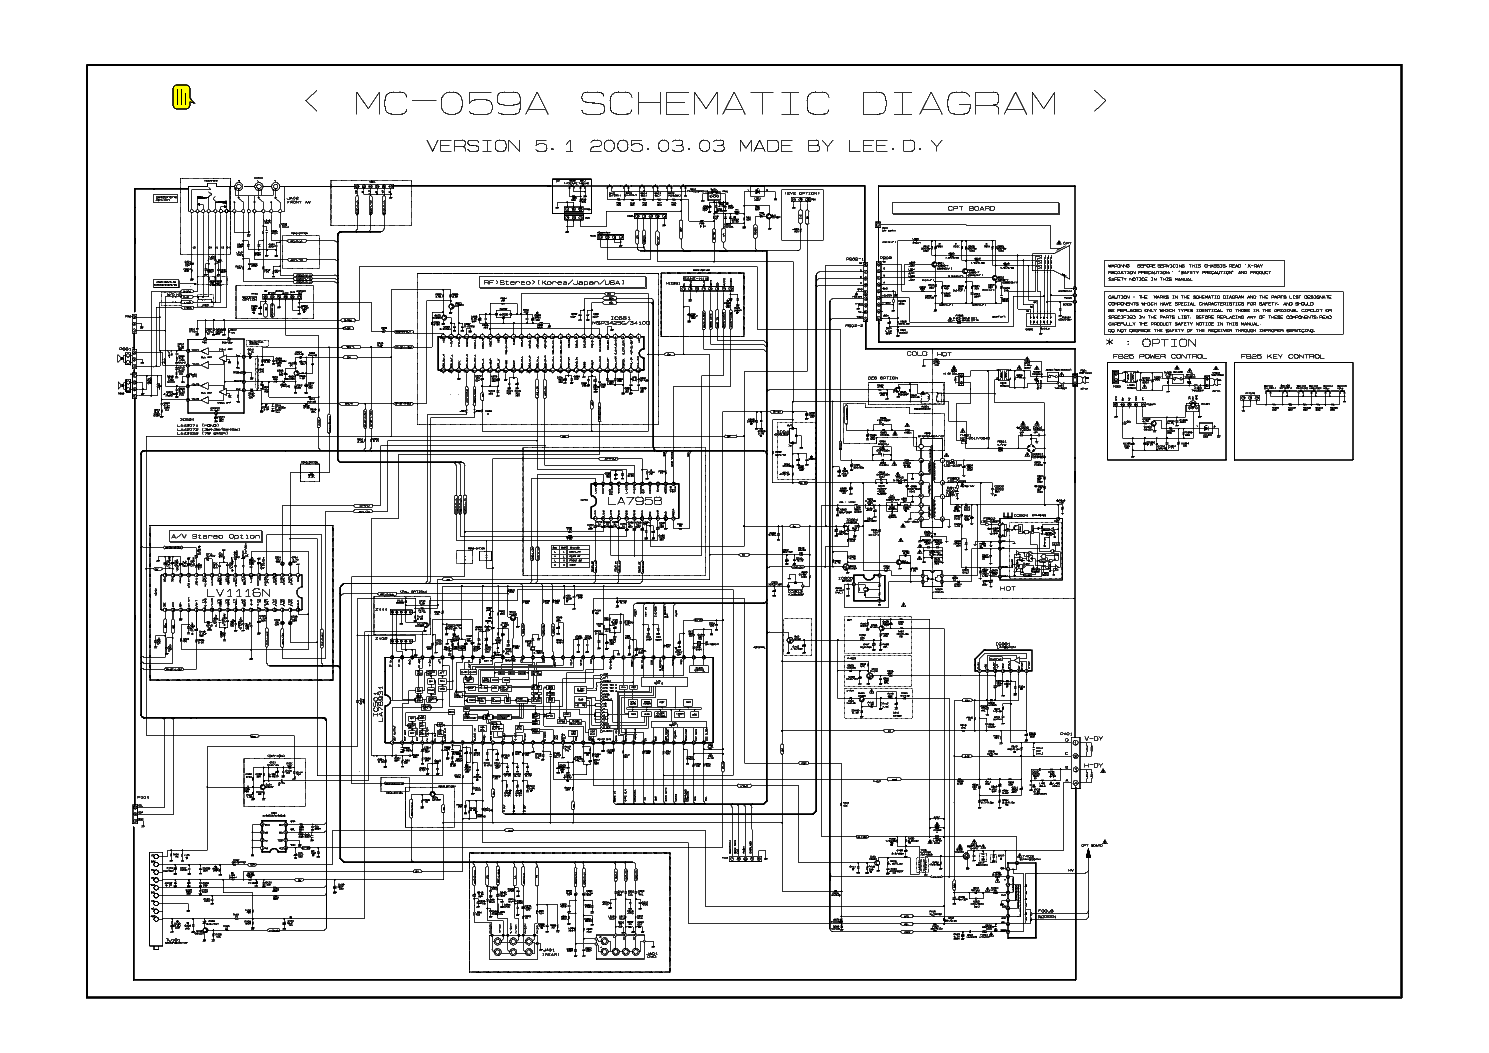 lg tv circuit diagram image lg tv circuit diagram the wiring diagram on lg tv circuit diagram